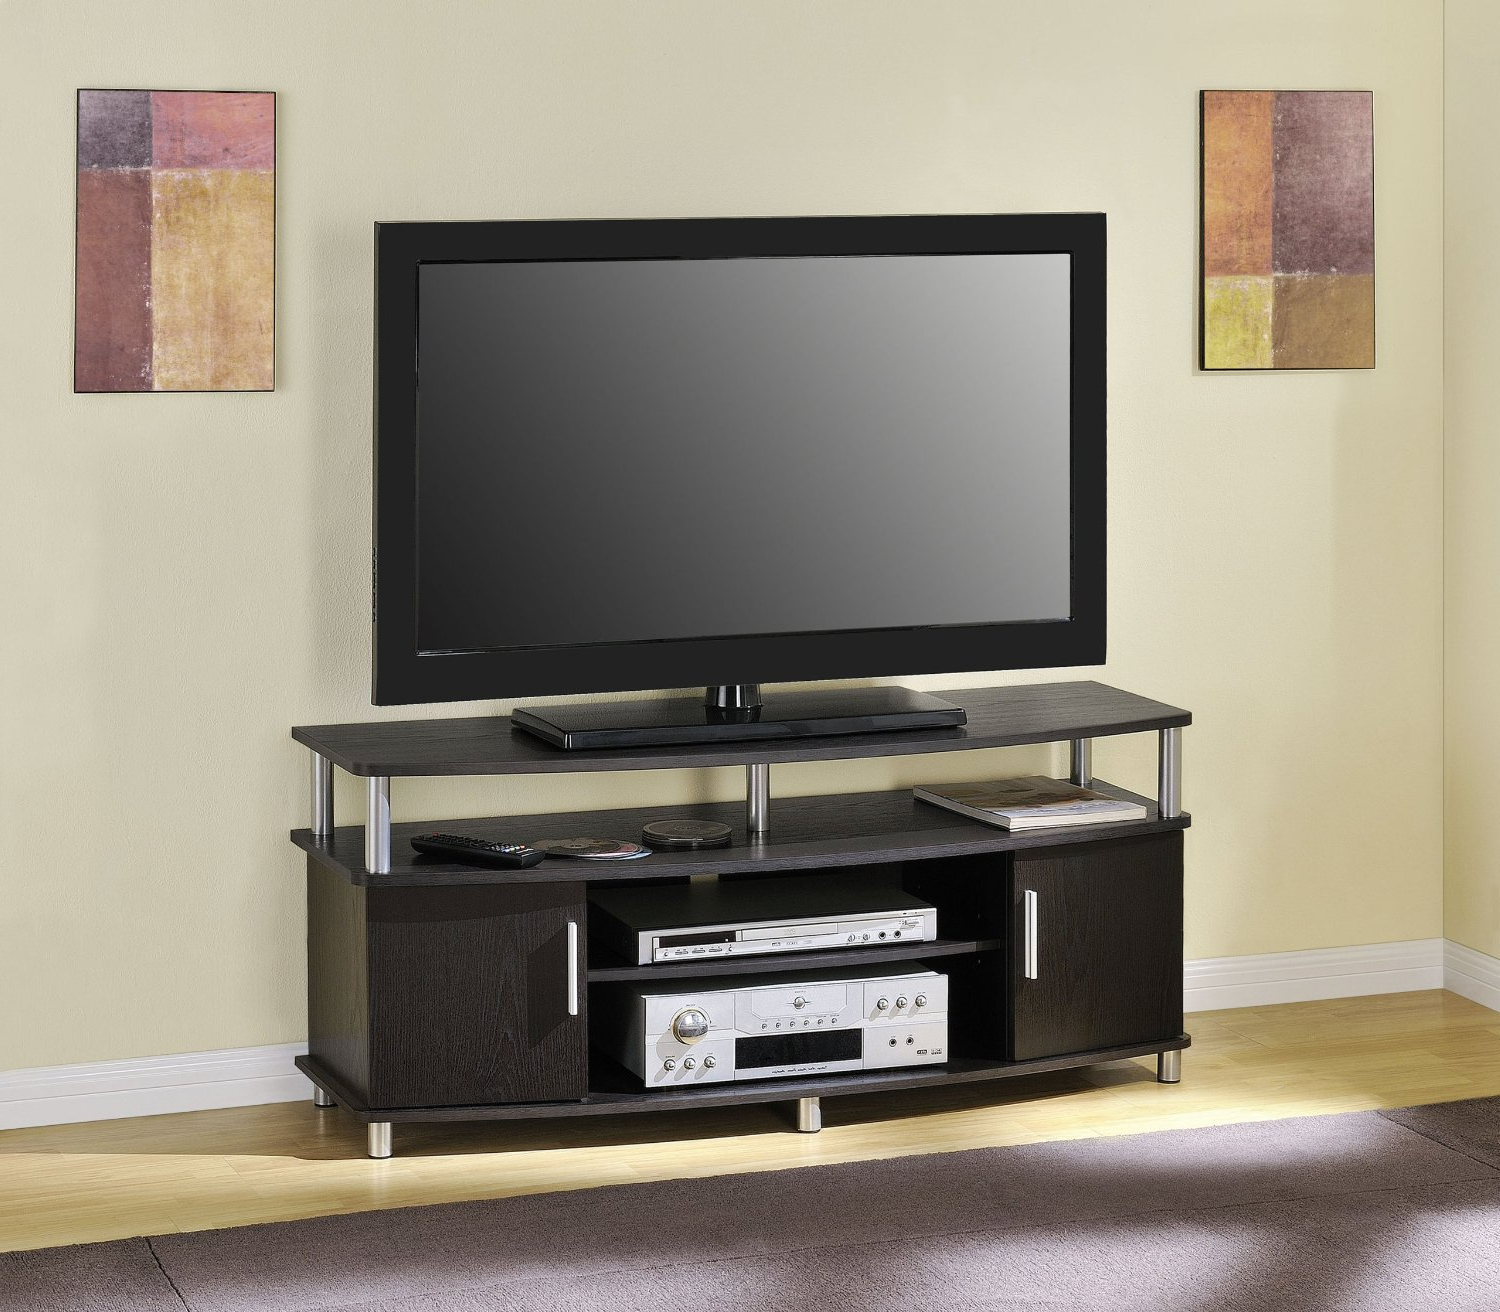 Most Popular Modern Tv Cabinets For Flat Screens Intended For Tv Stands: 7 Best Selling Flat Screen Tv Stands  (View 14 of 20)